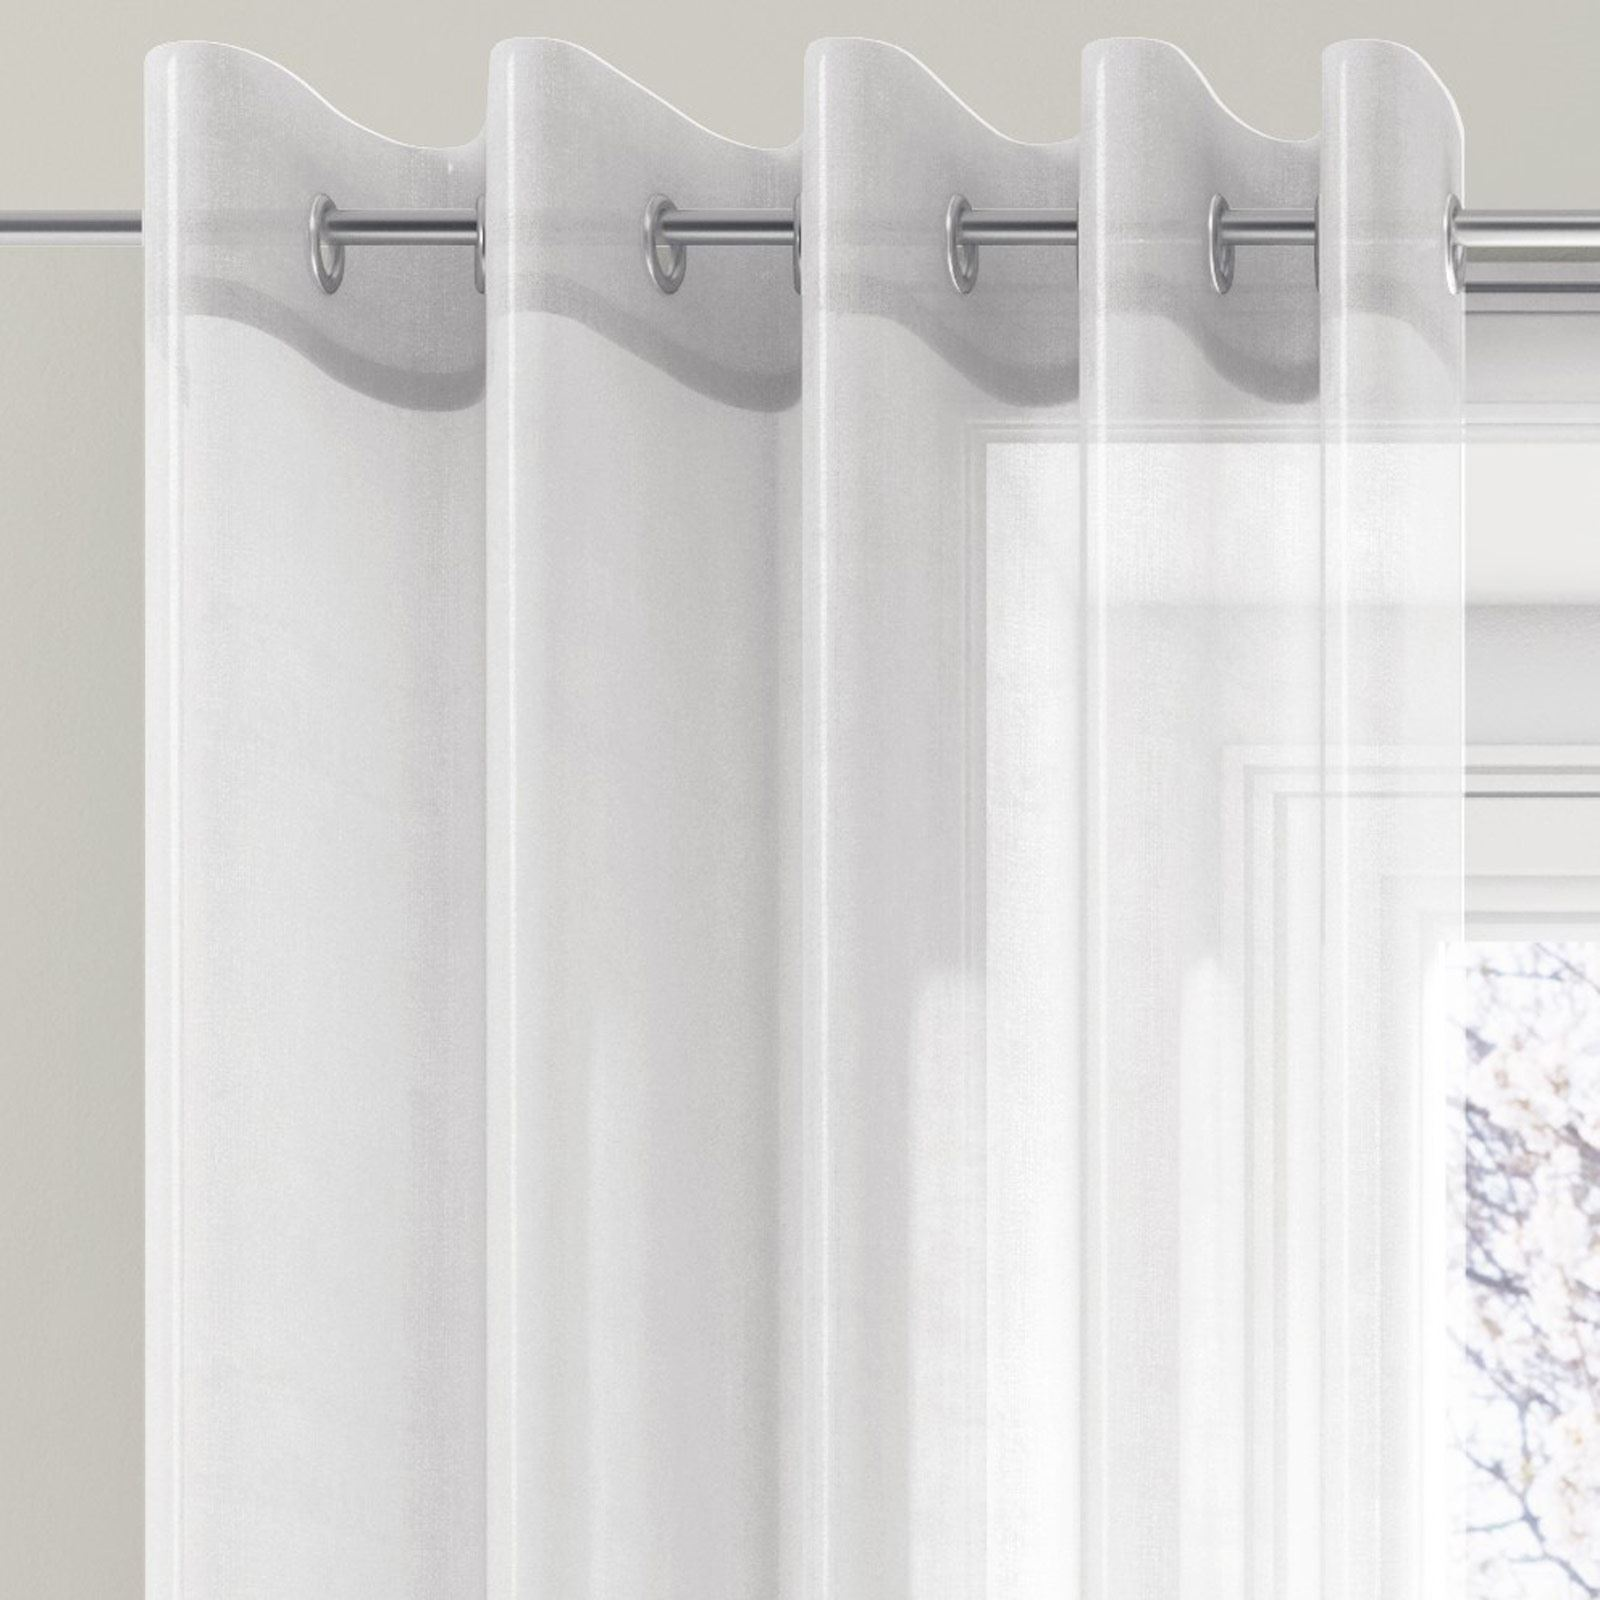 White Sheer Door Panel Curtains Ring Top Eyelet Voile Panel Ready Made Sheer Window Door